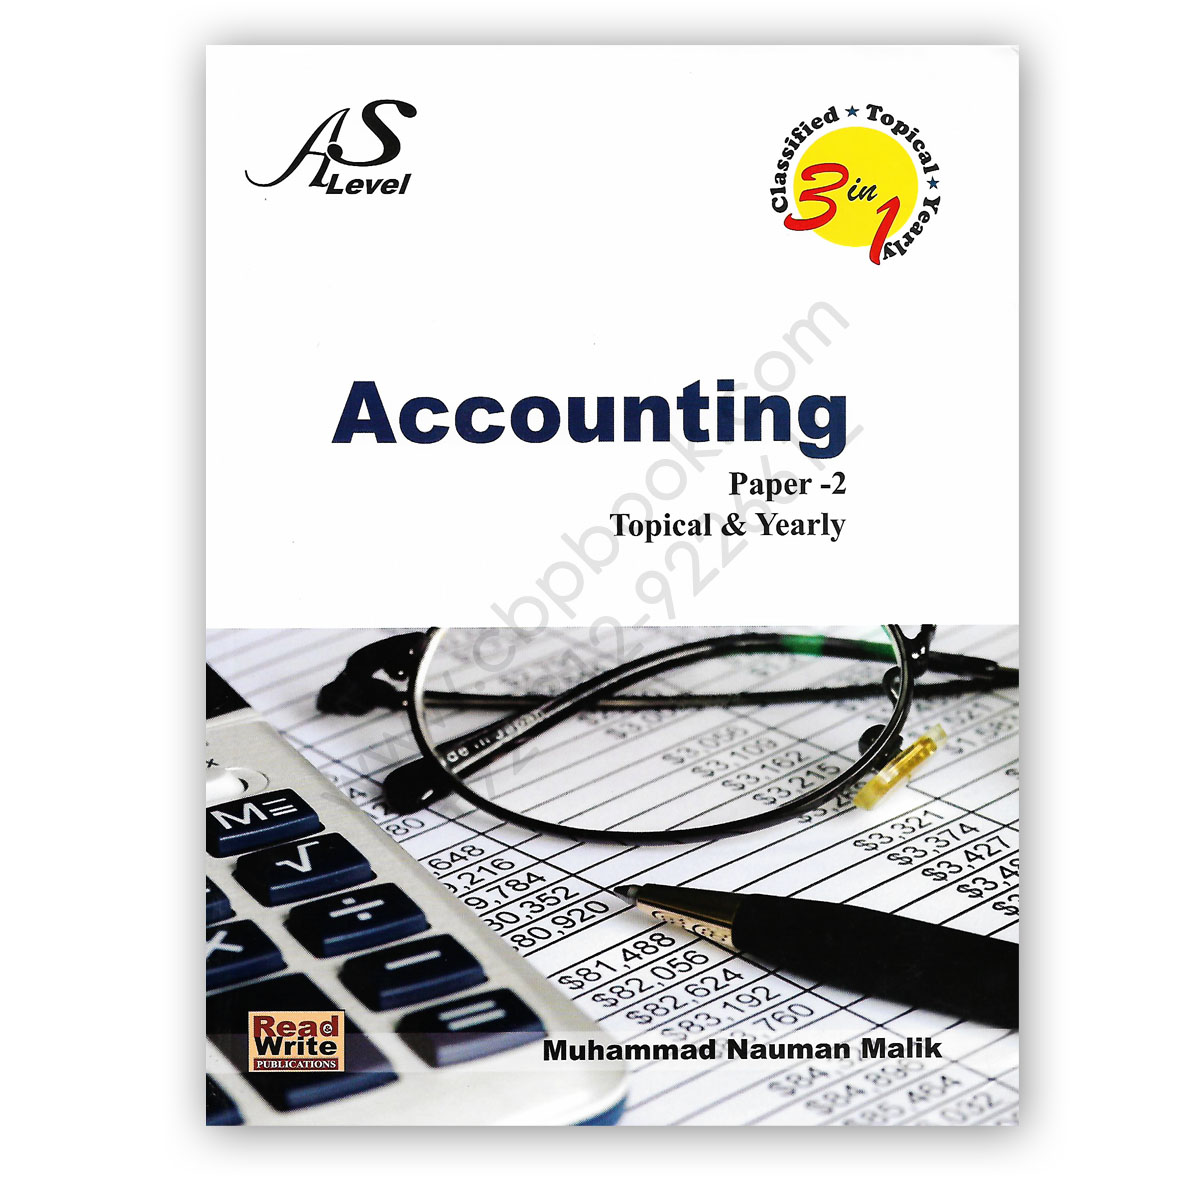 as level accounting paper 2 topical yearly by nauman malik - read write